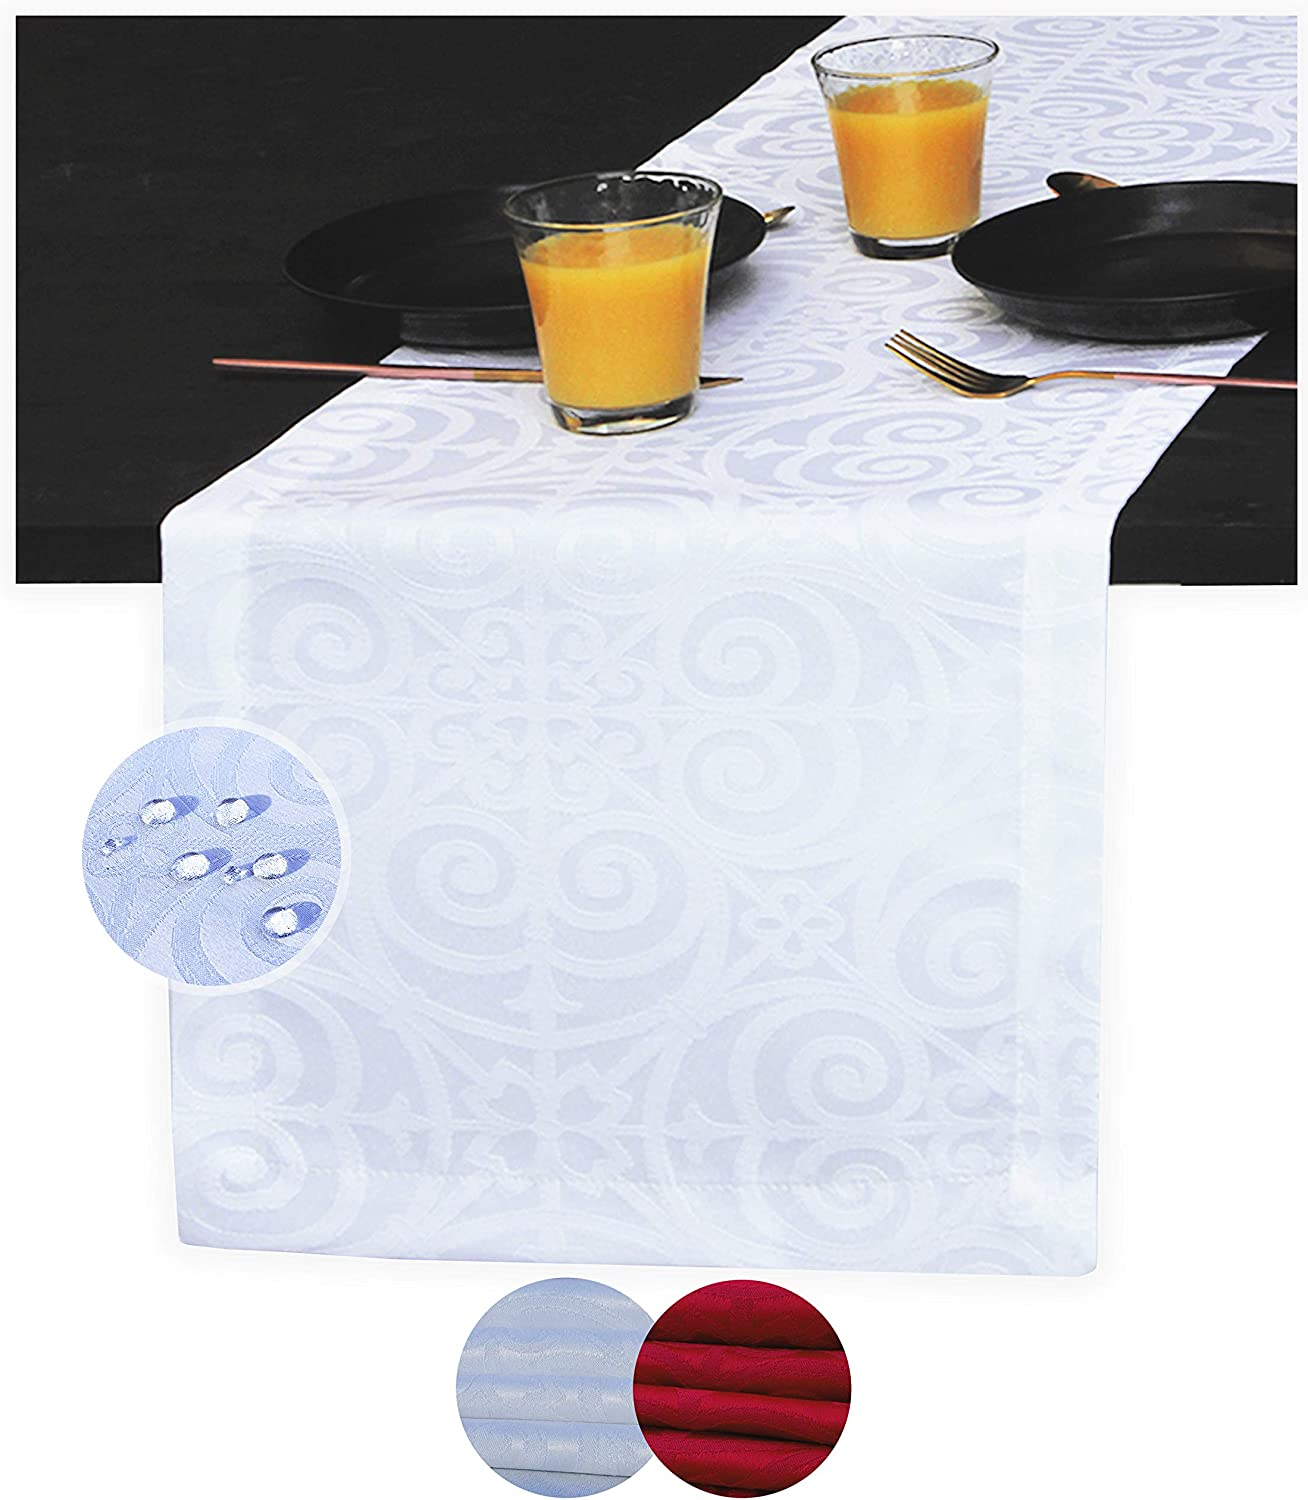 Akutana White Table Runner 72 inch, Waterproof Damask Dresser Scarf, Outdoor Coffee Table Runner, Spill-Proof Jacquard Dining Table Runners for Dinner Parties, Events, Wedding, Long Decor, Christmas